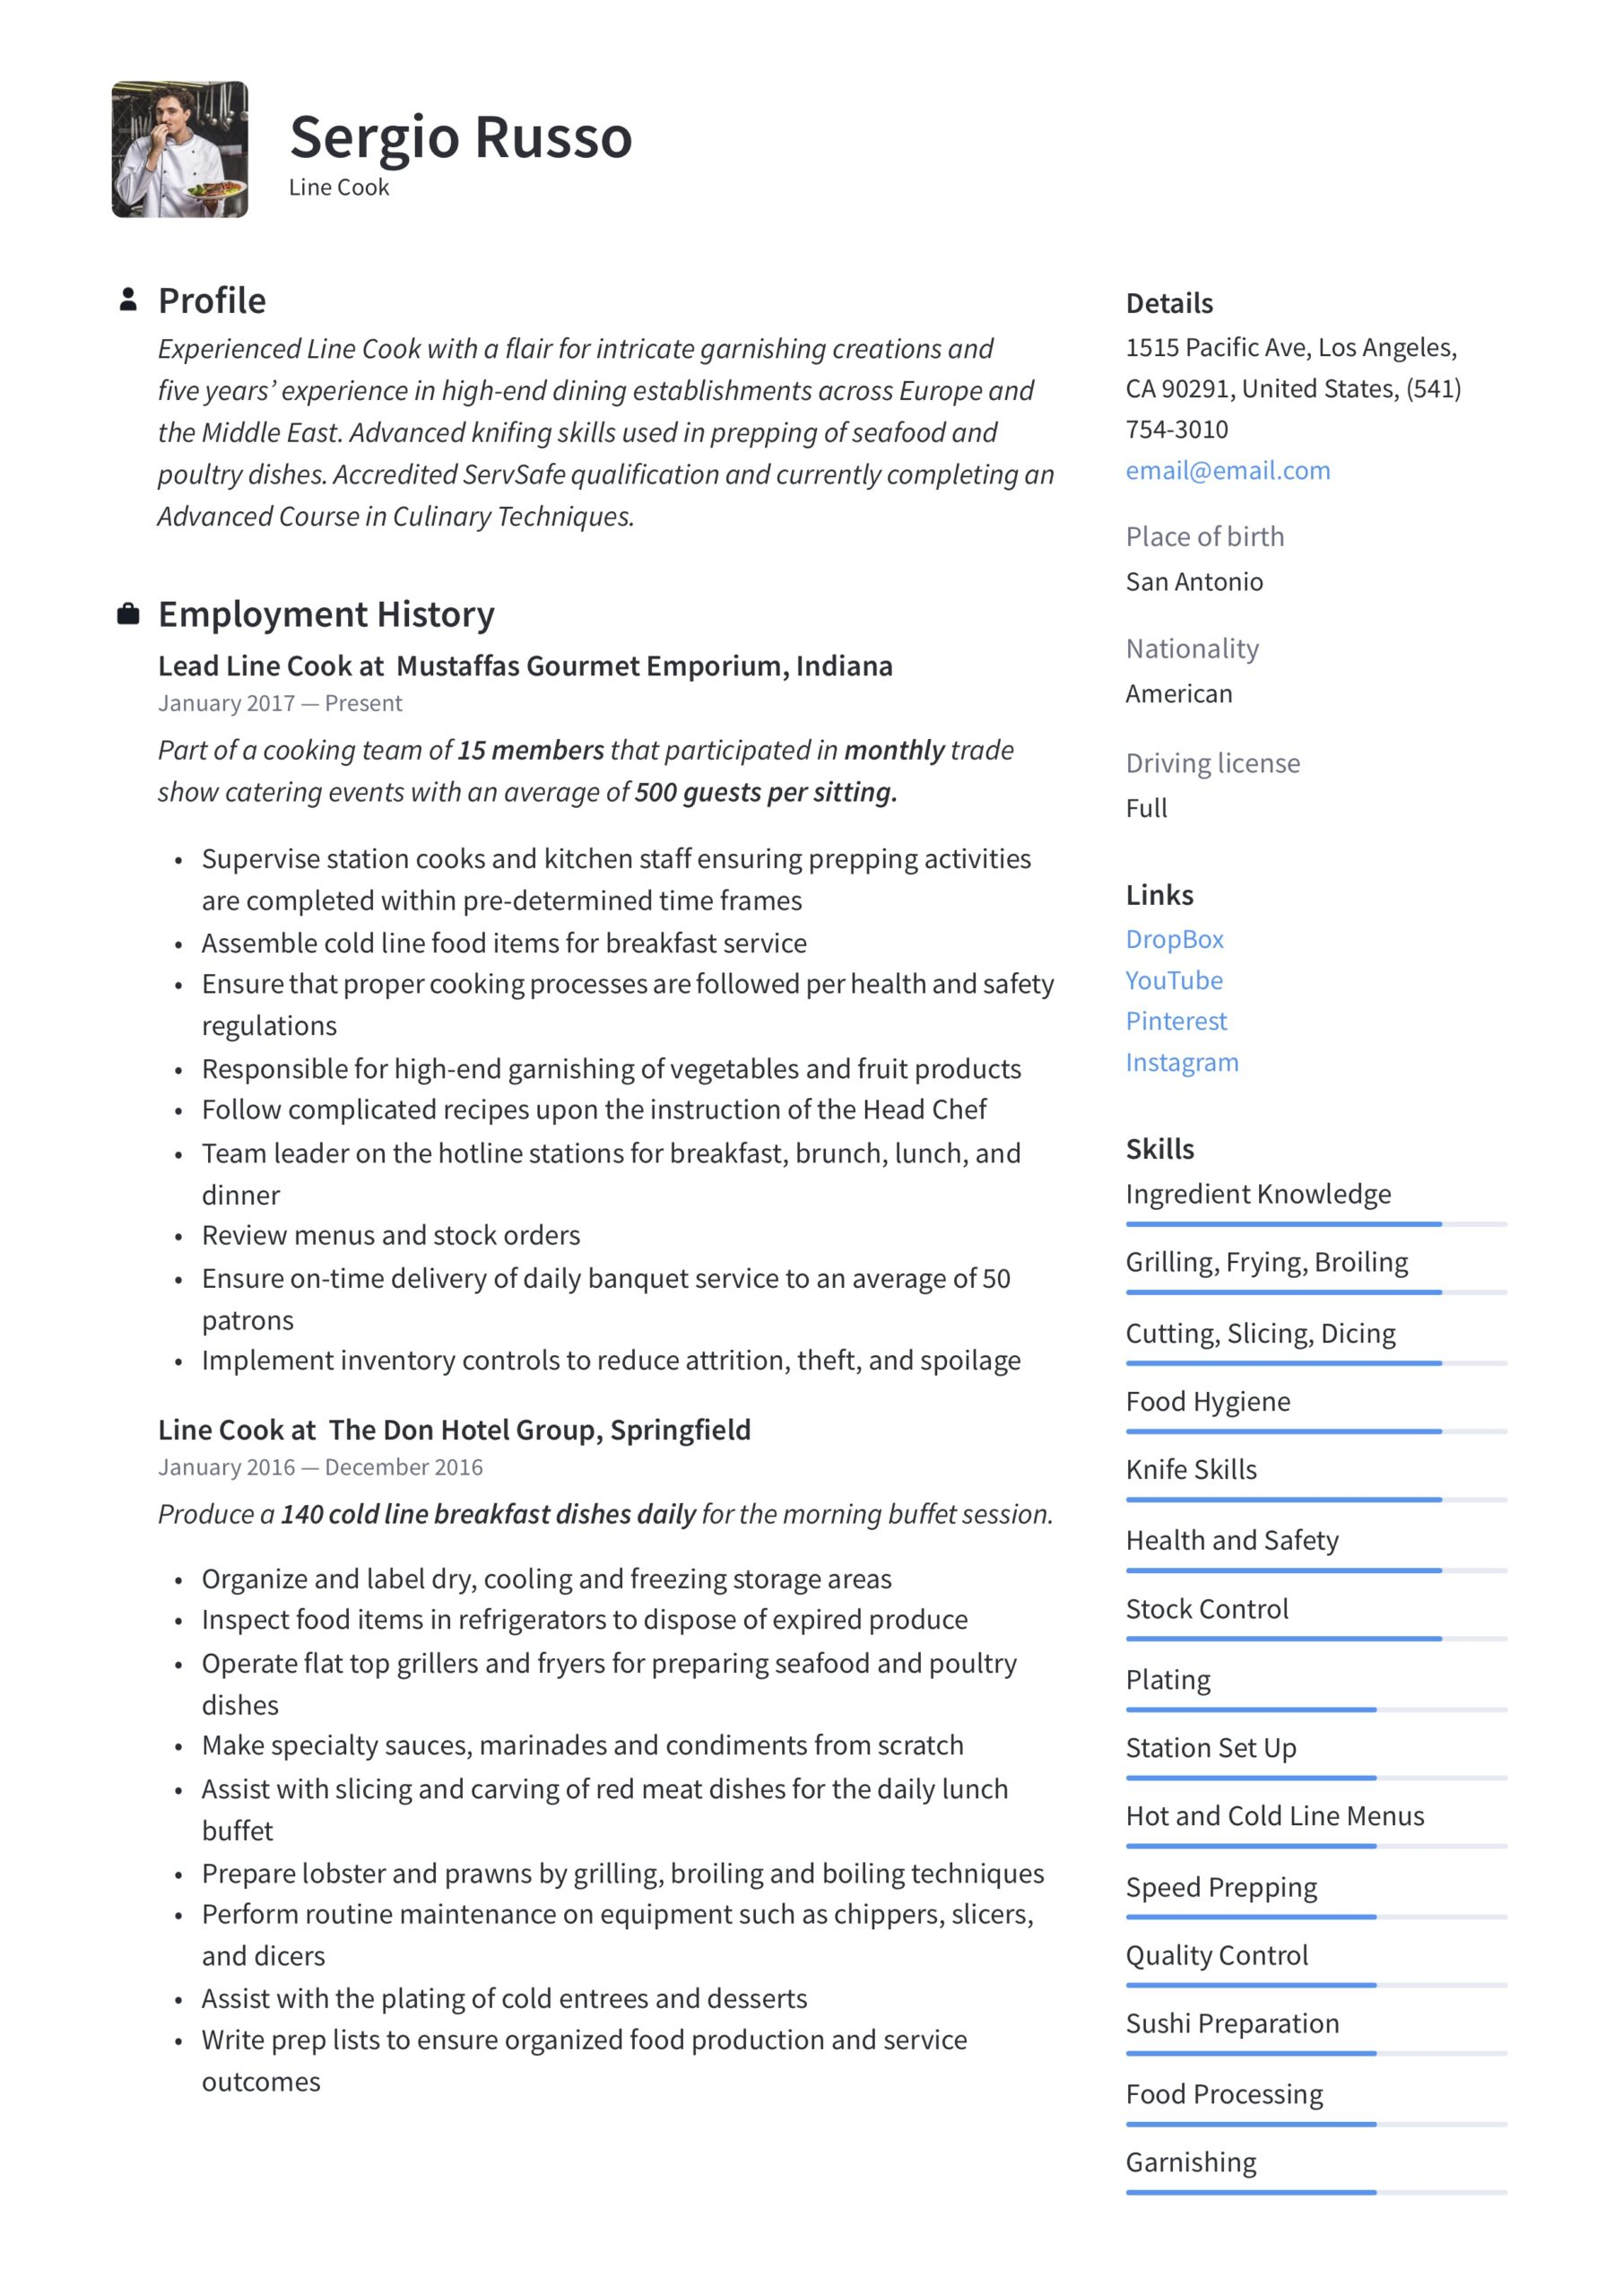 line resume writing guide examples free templates hindi teacher for school senior graphic Resume Free Line Cook Resume Templates